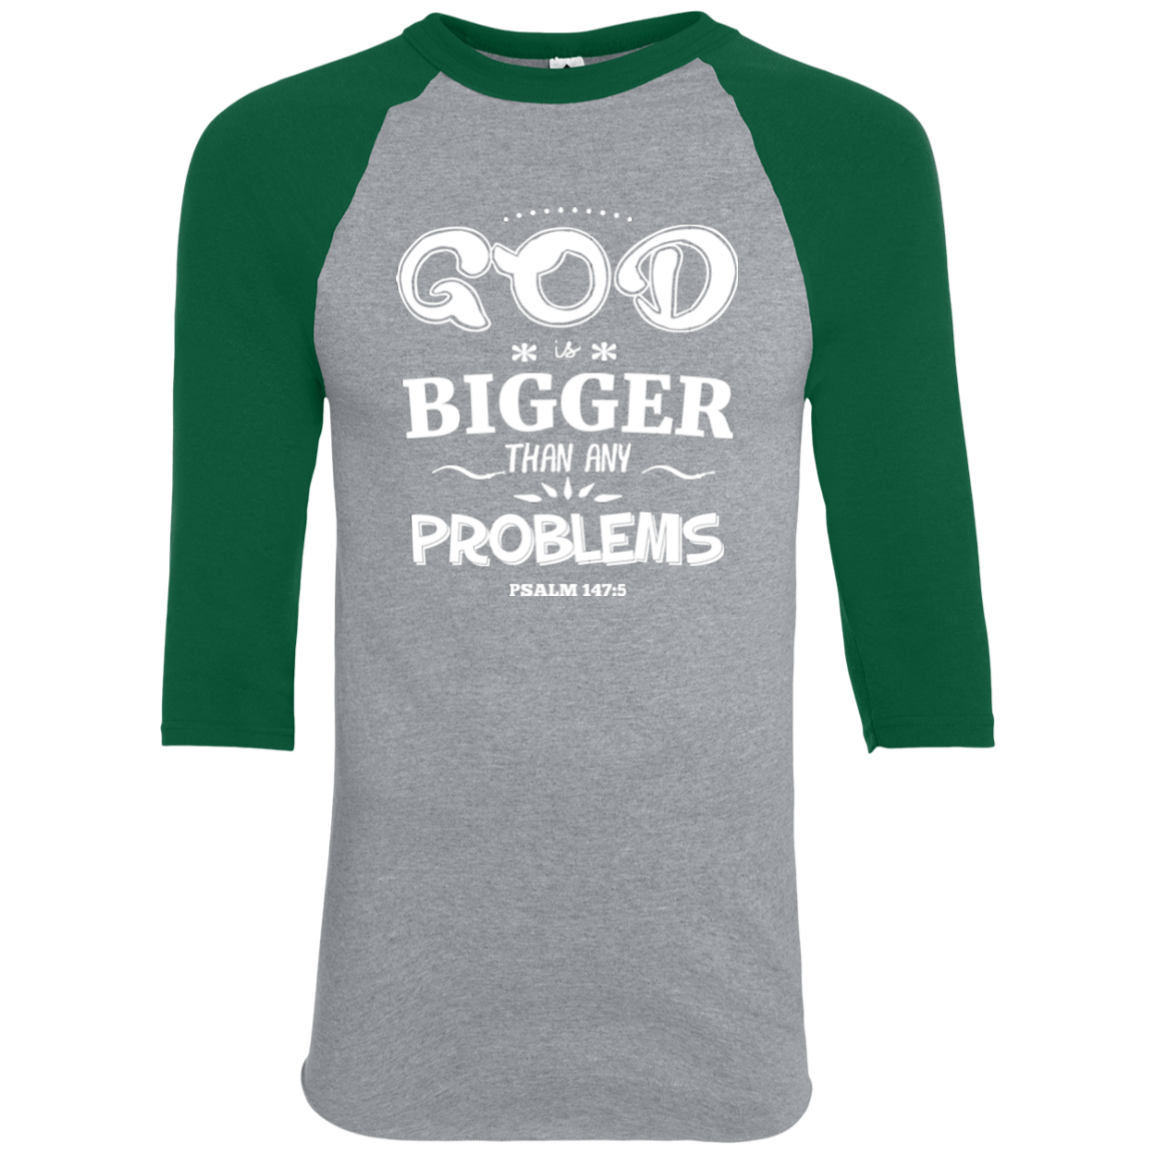 Bigger than Any Problems